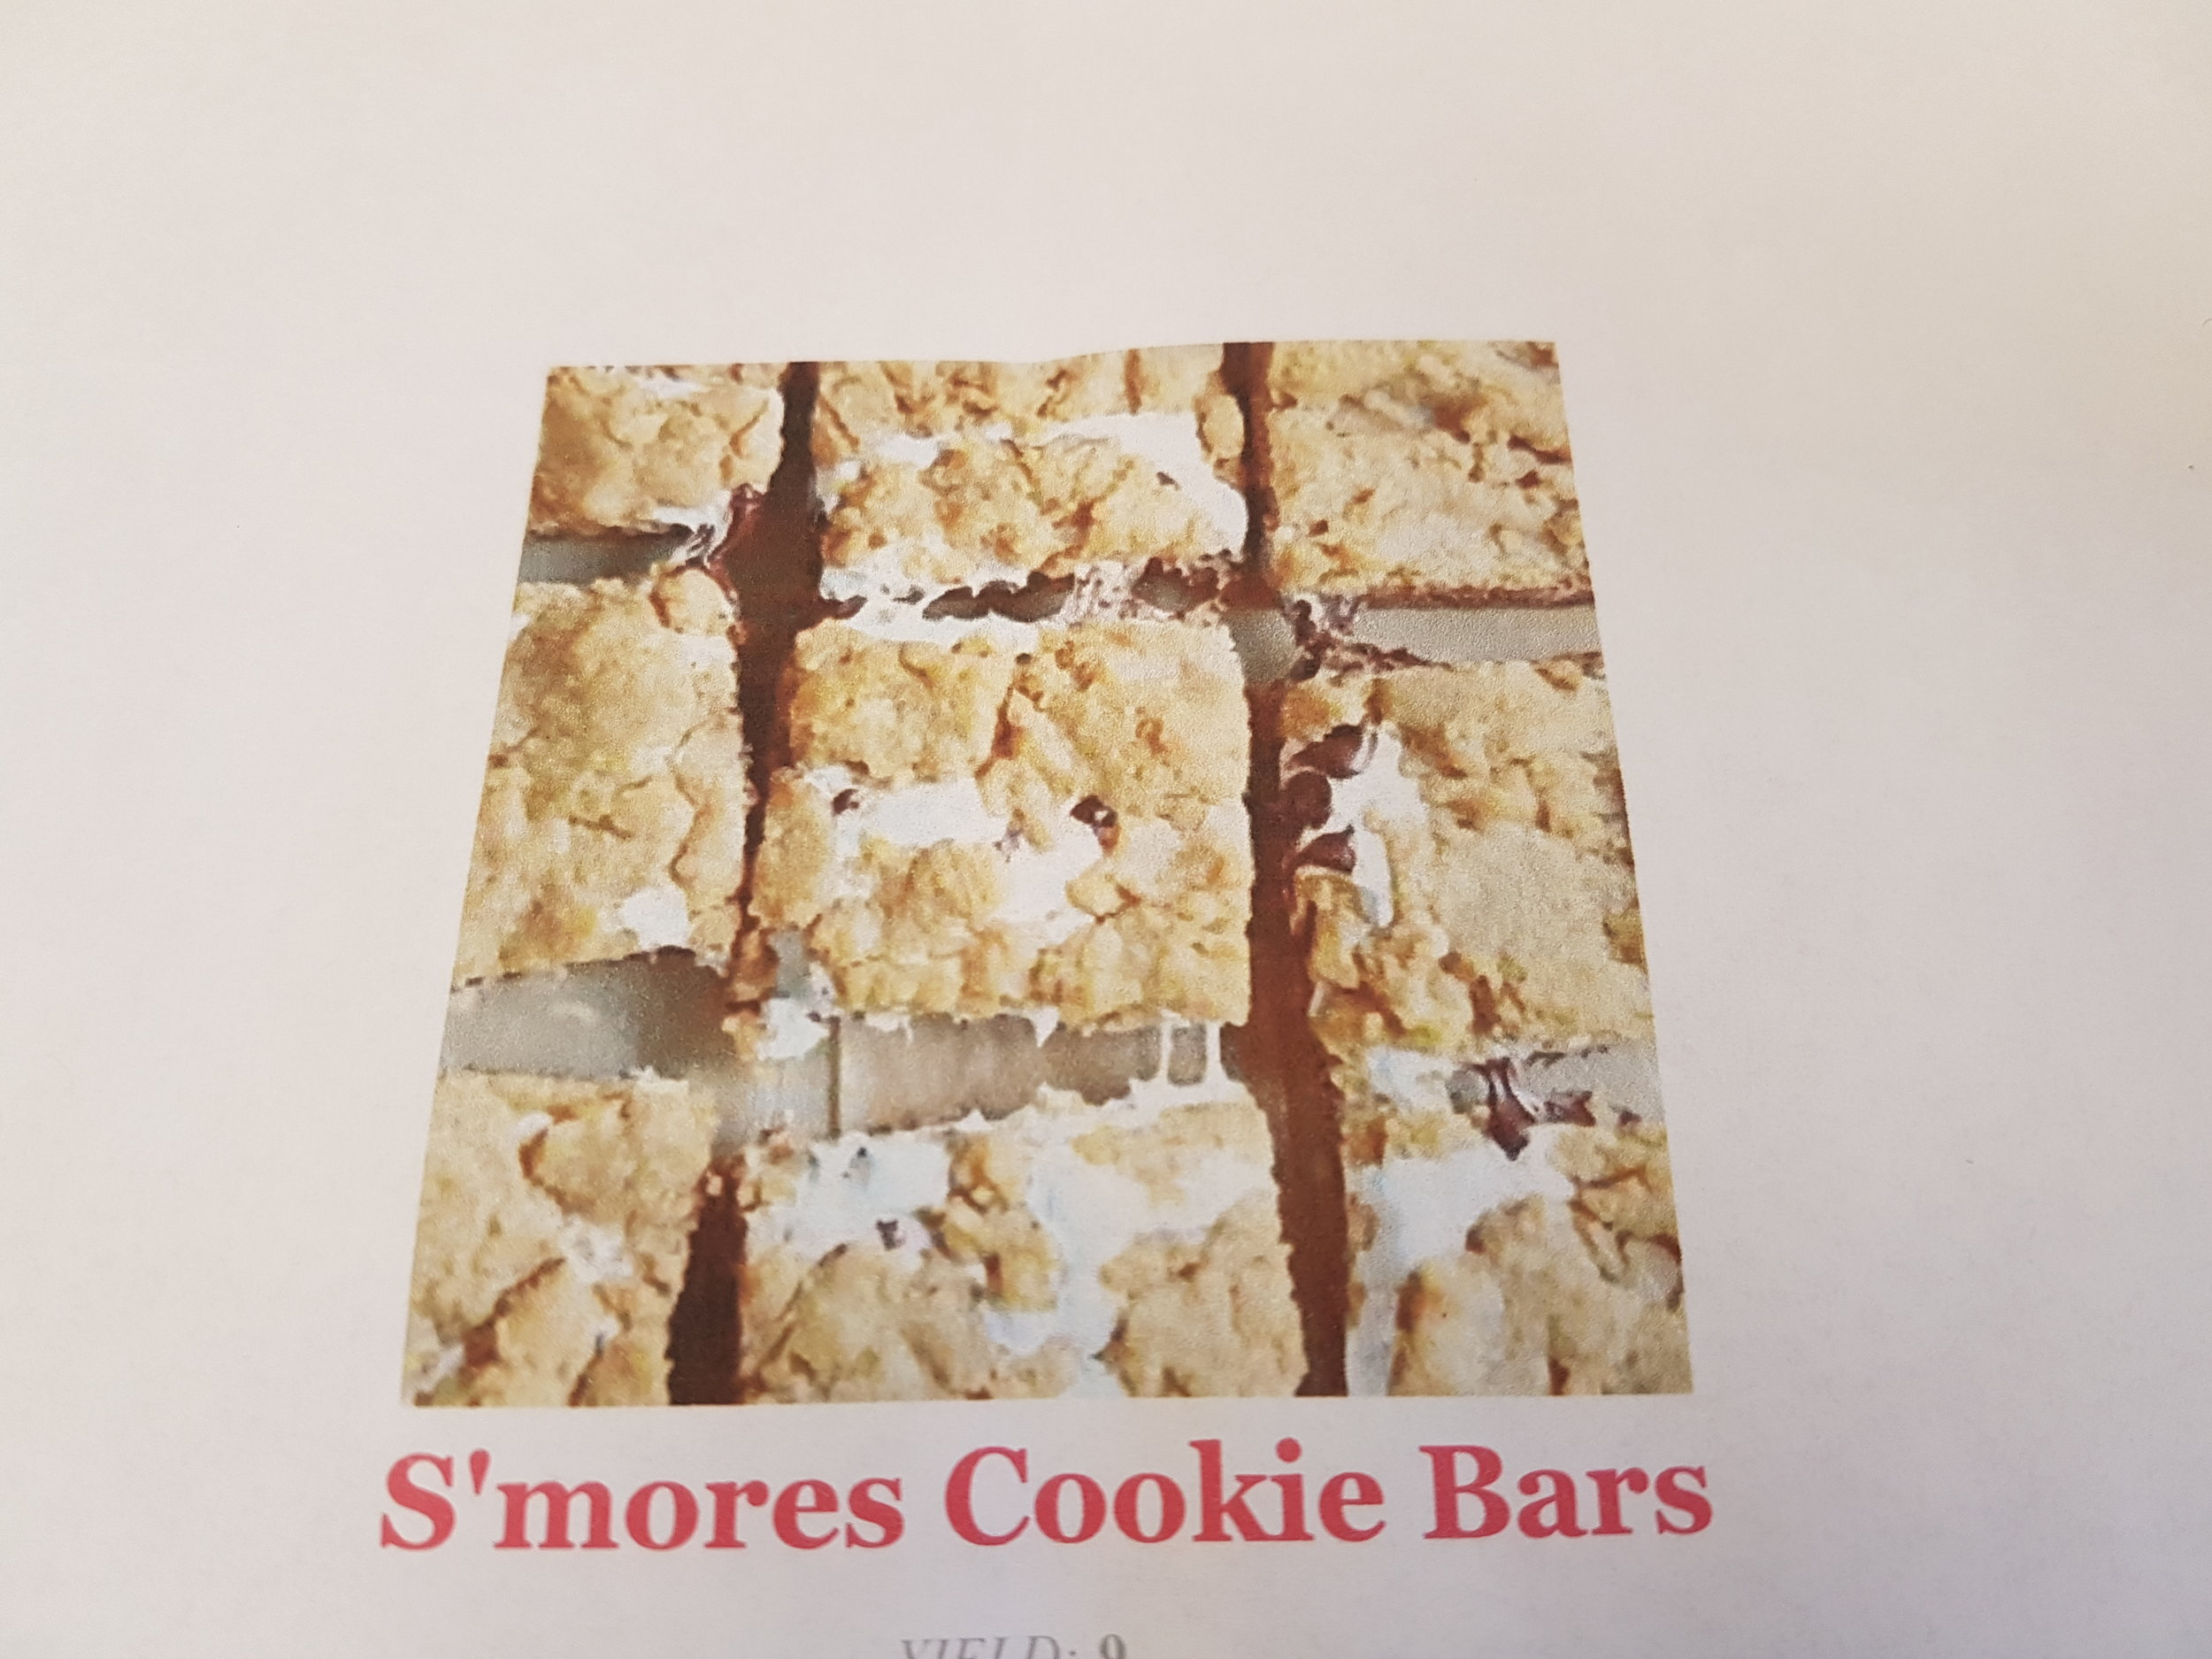 S'mores cookie bars pictures.jpg